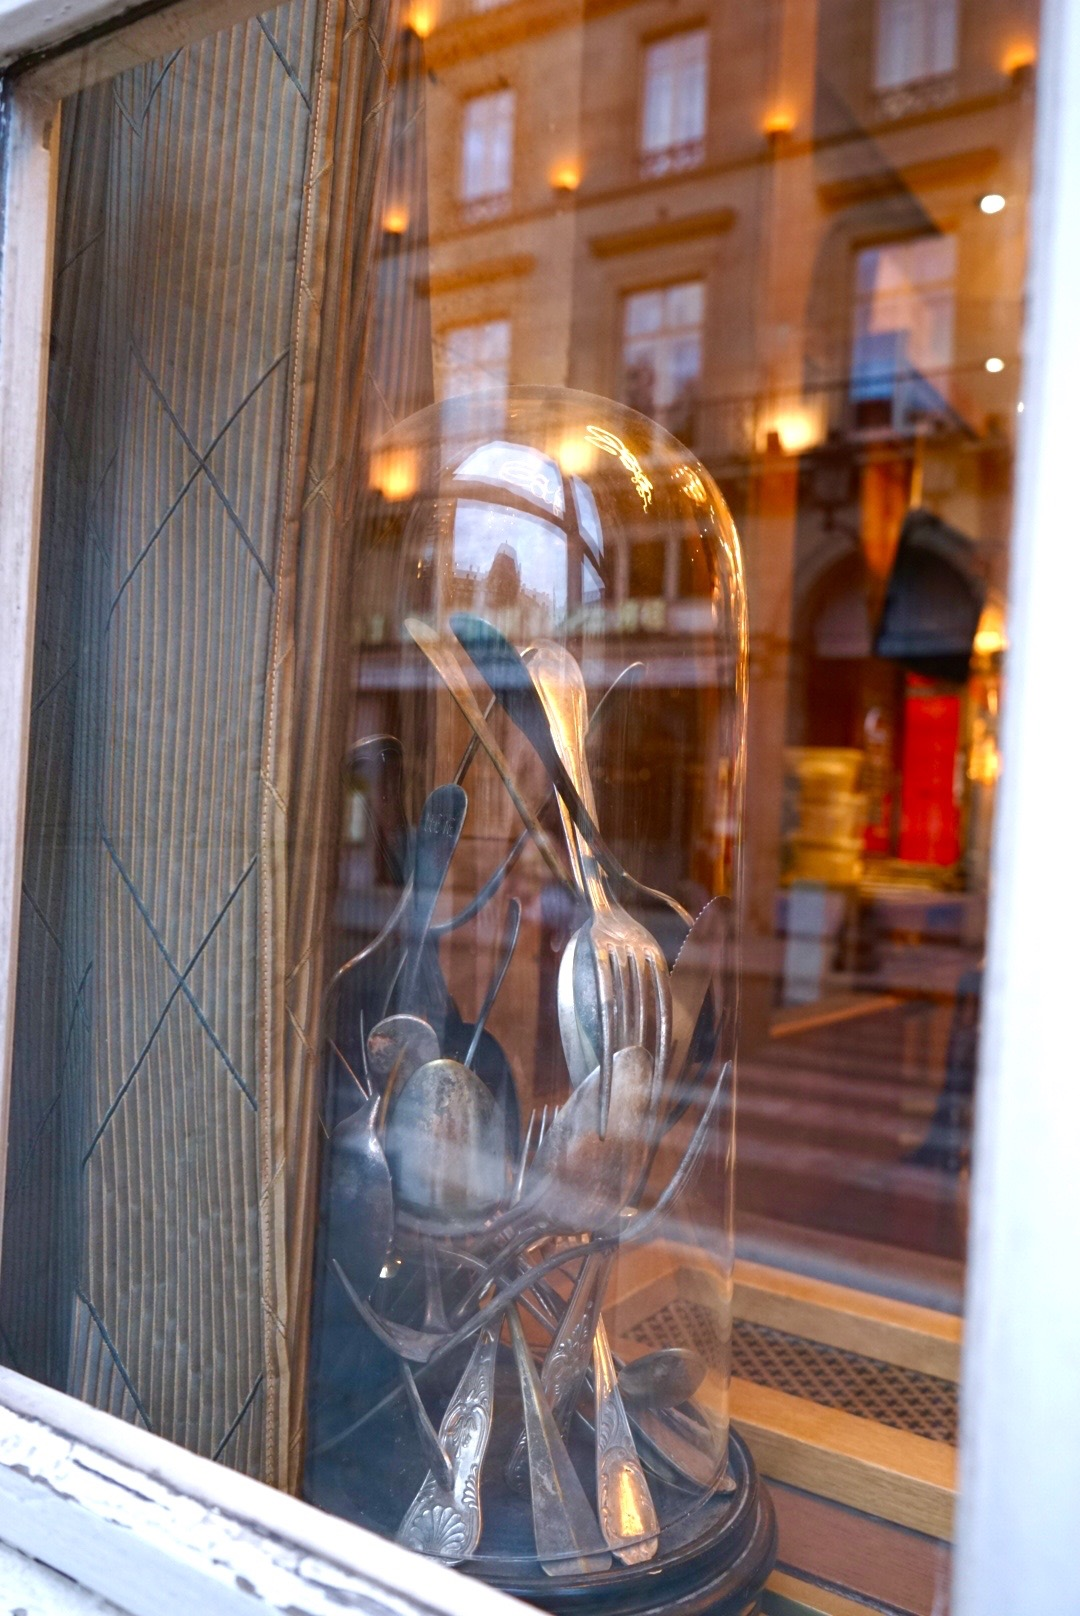 Paris ~ cloche filled with flatware sculpture in window sill of coffee shop